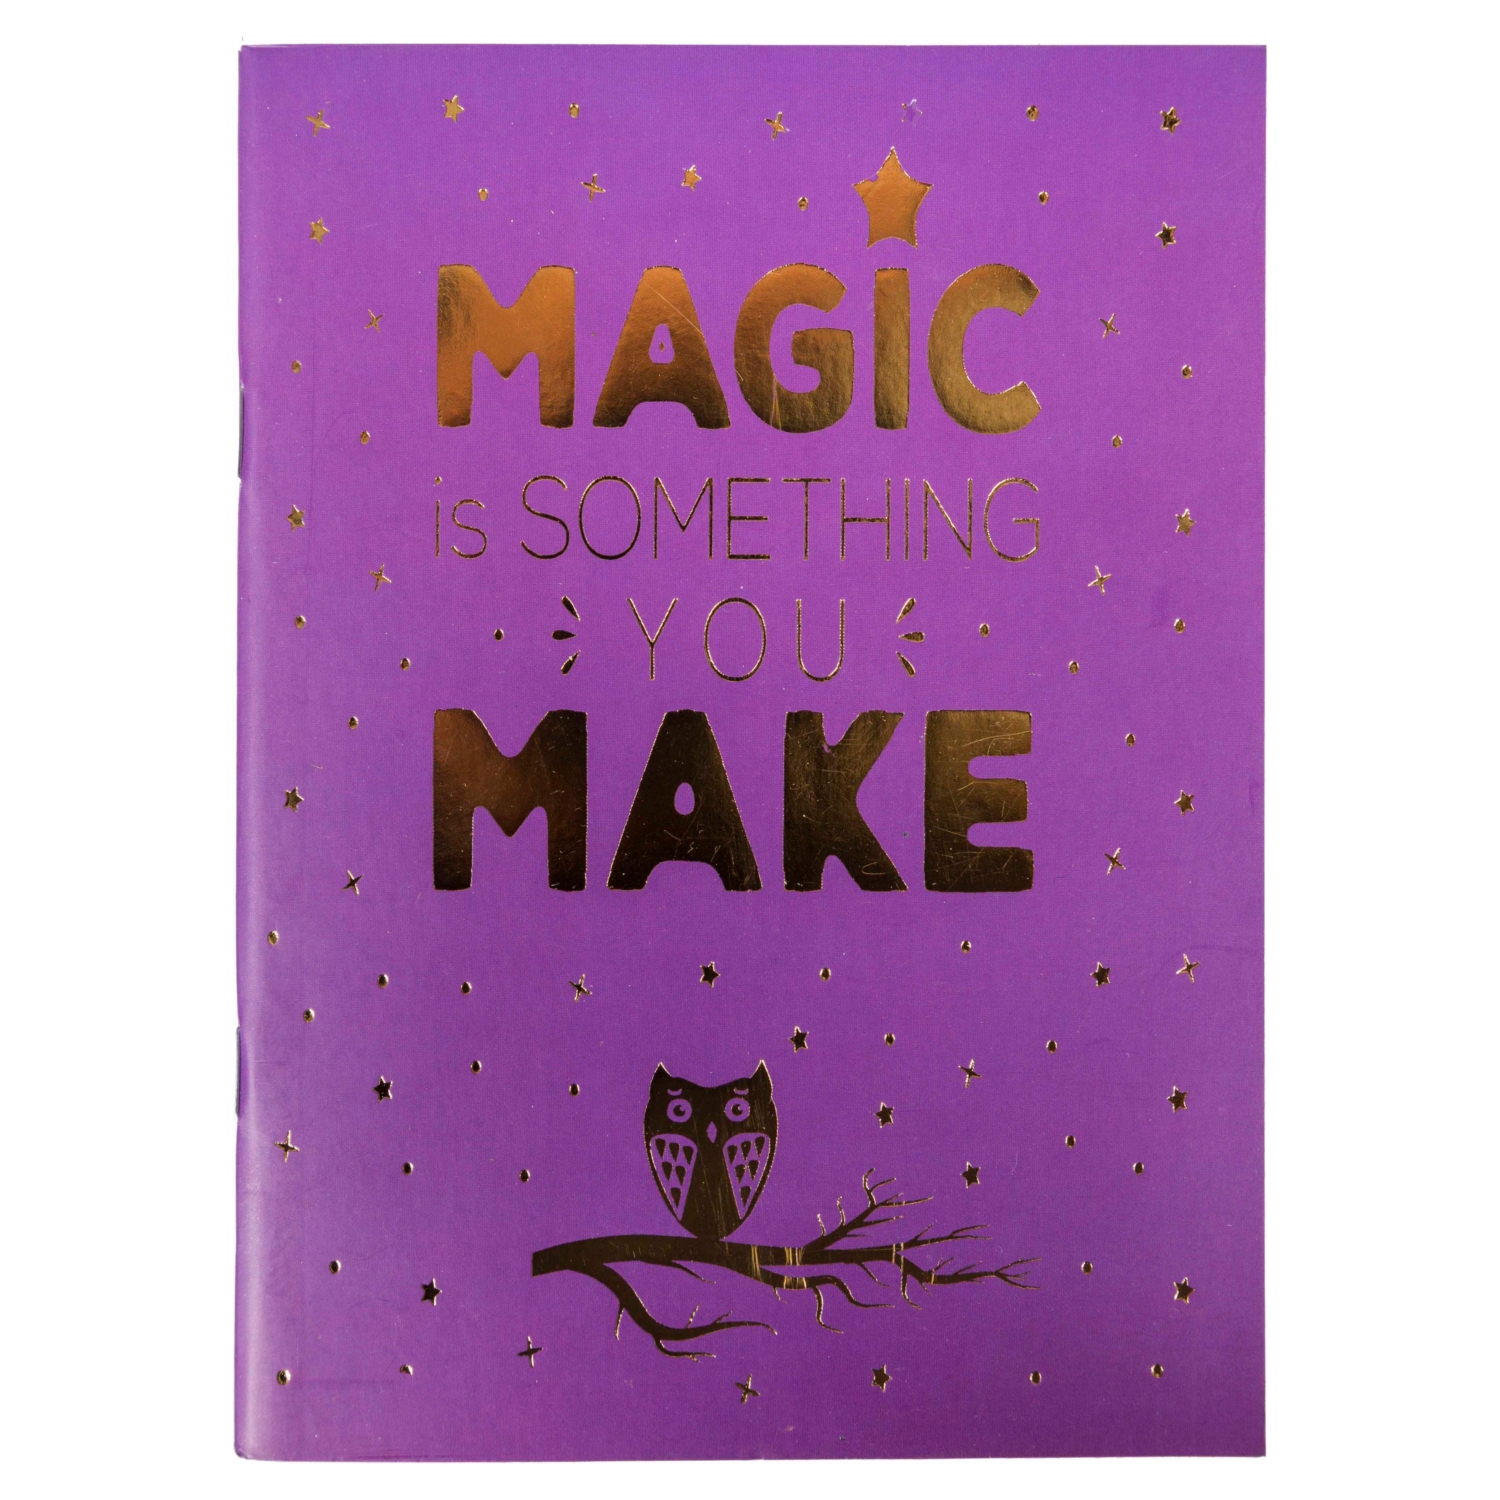 MAGIC DEFTER